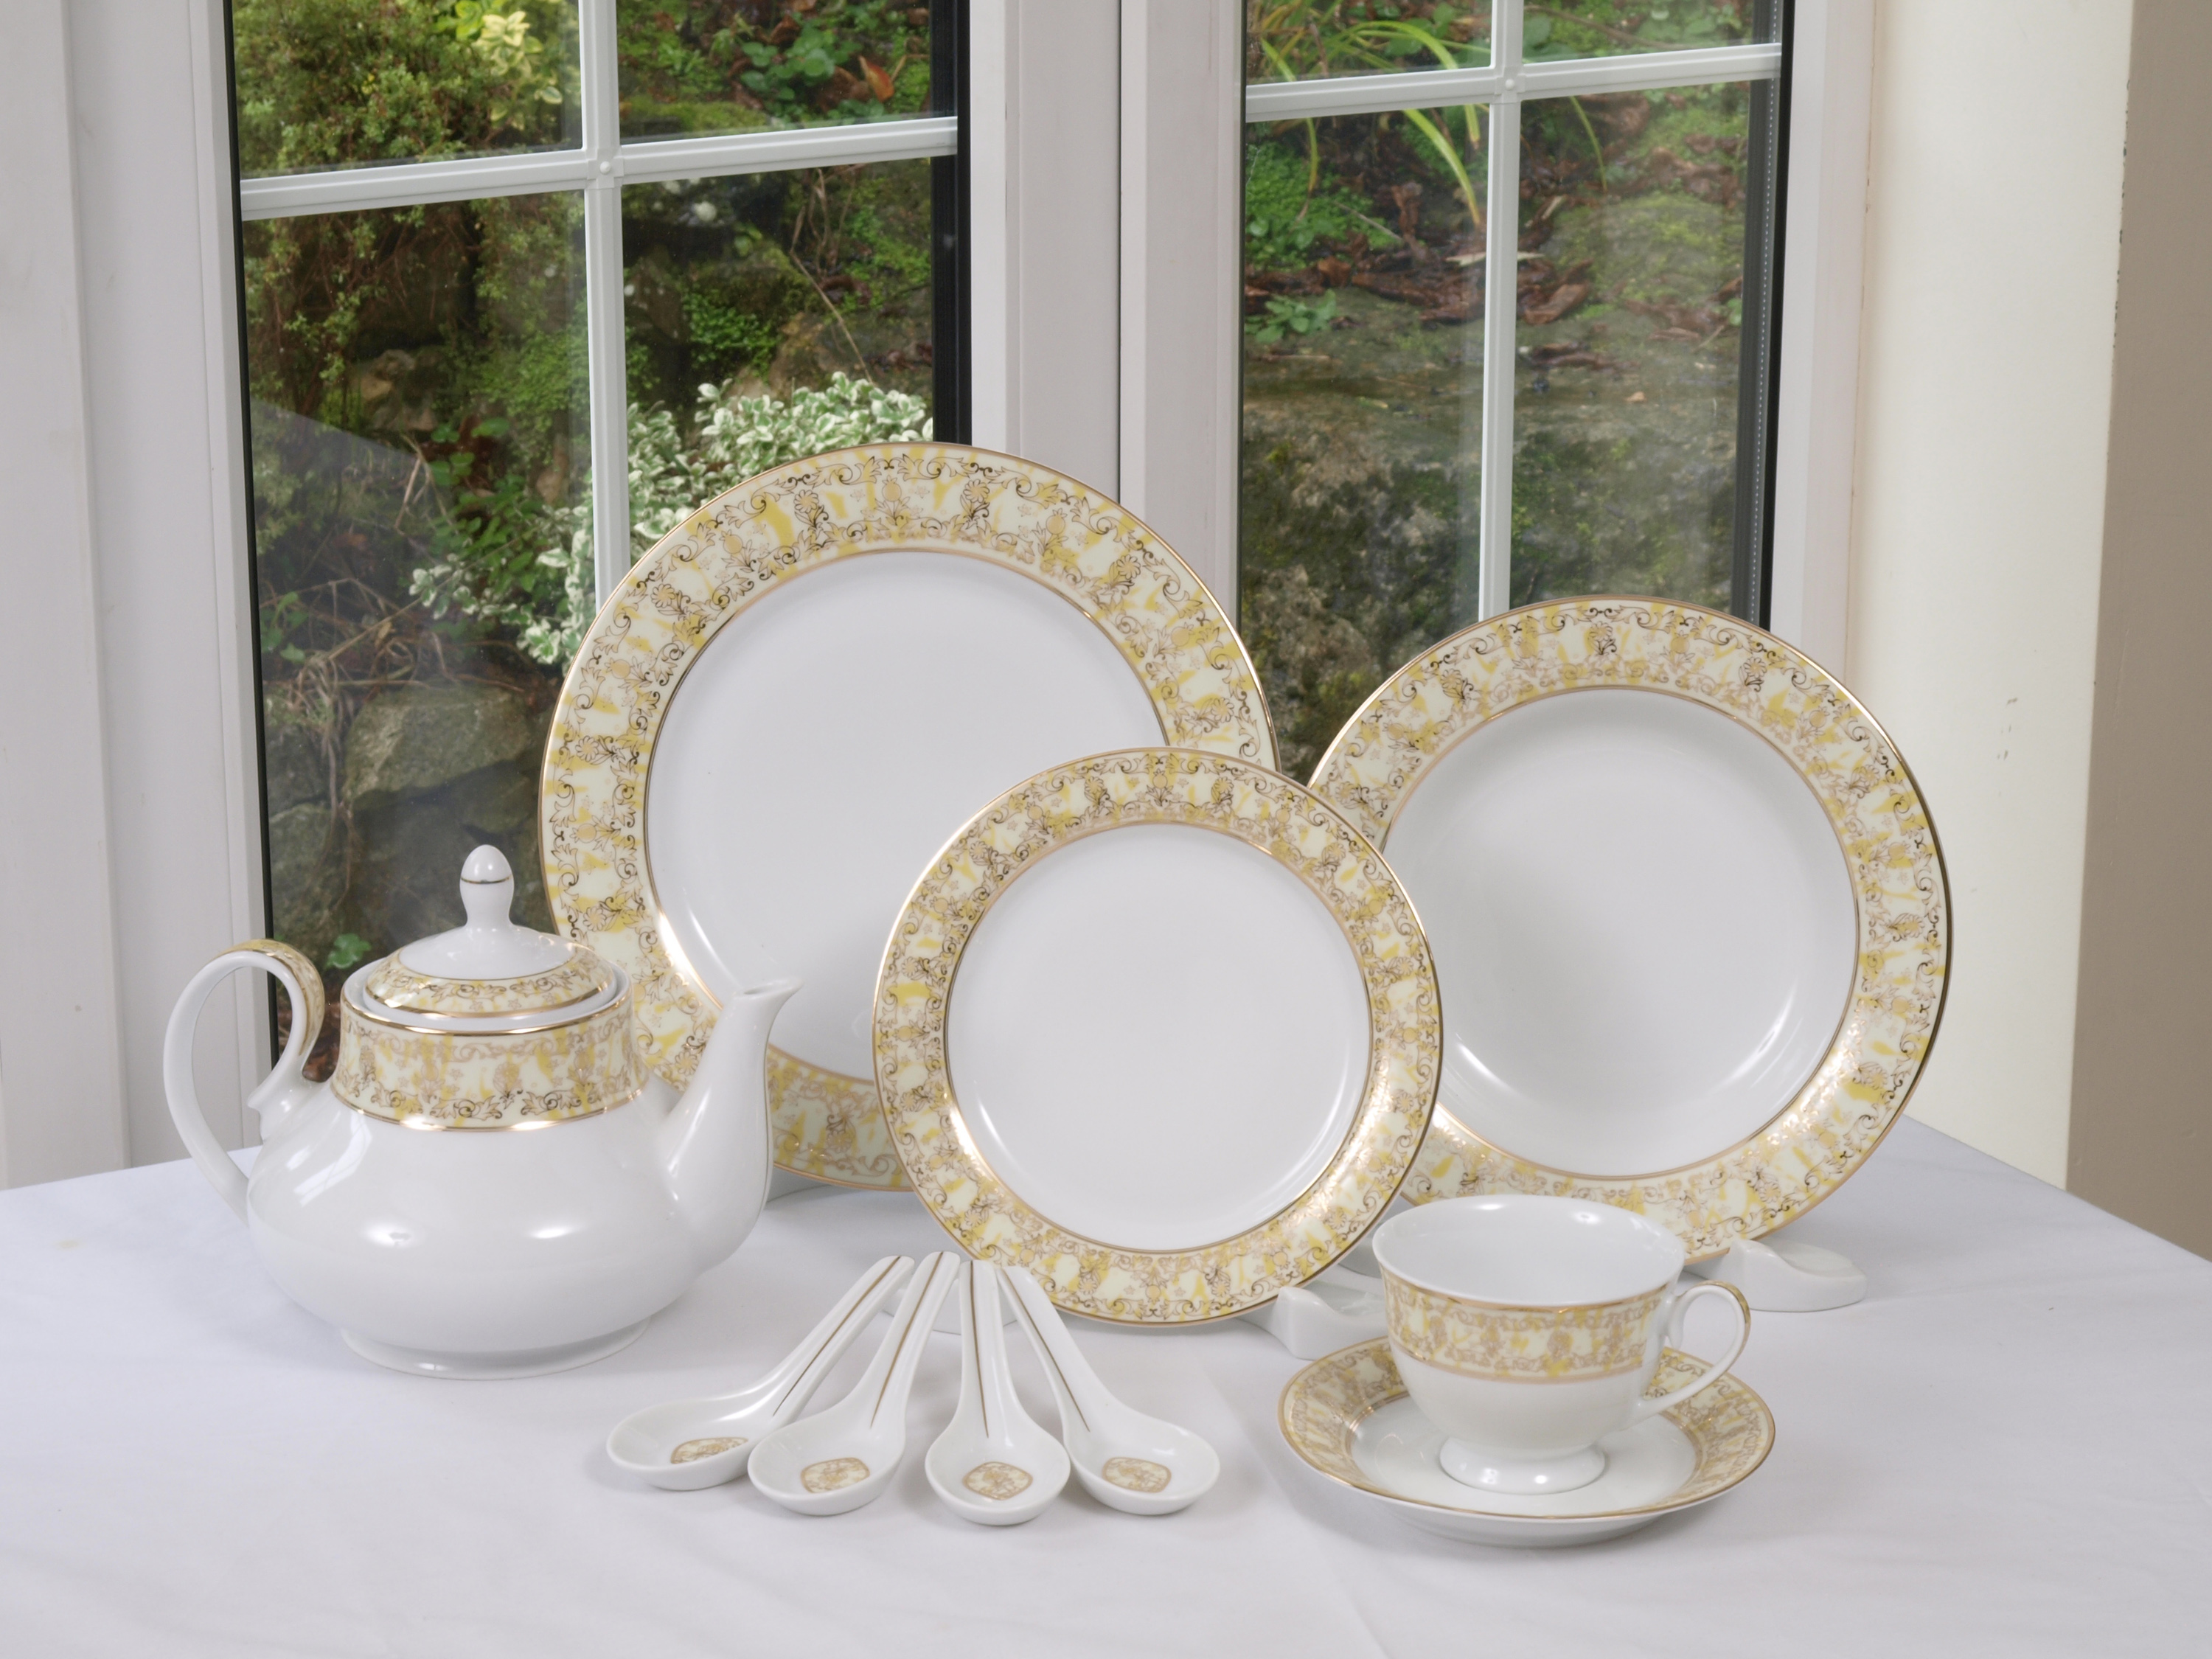 THE MARIGOLD 96 PIECE DINNER SERVICE